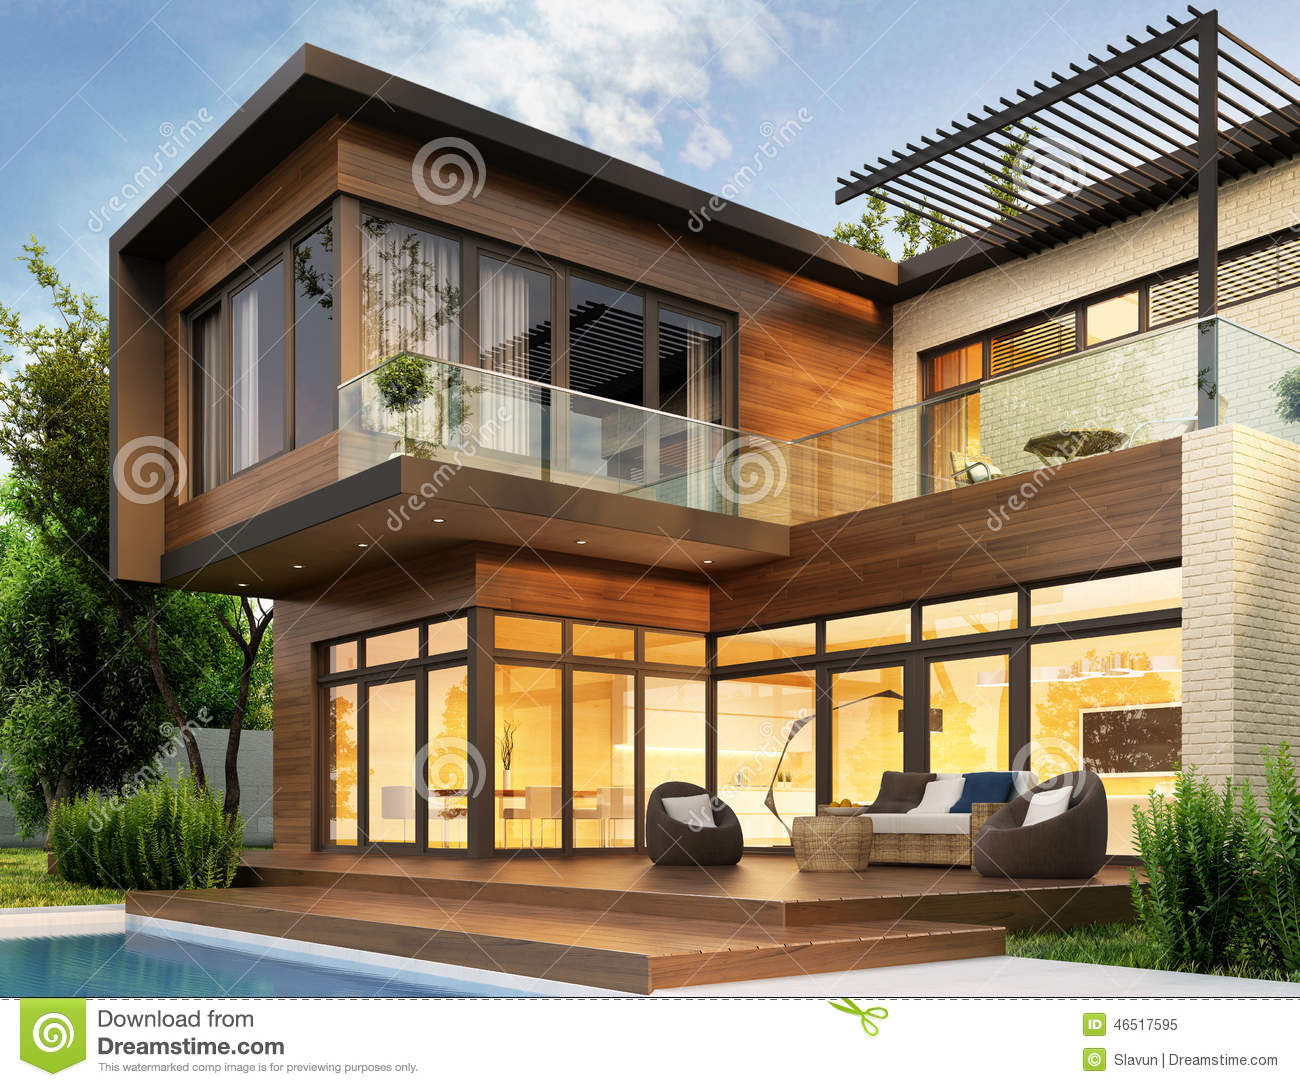 modern house stock image image of architecture interior 46517595